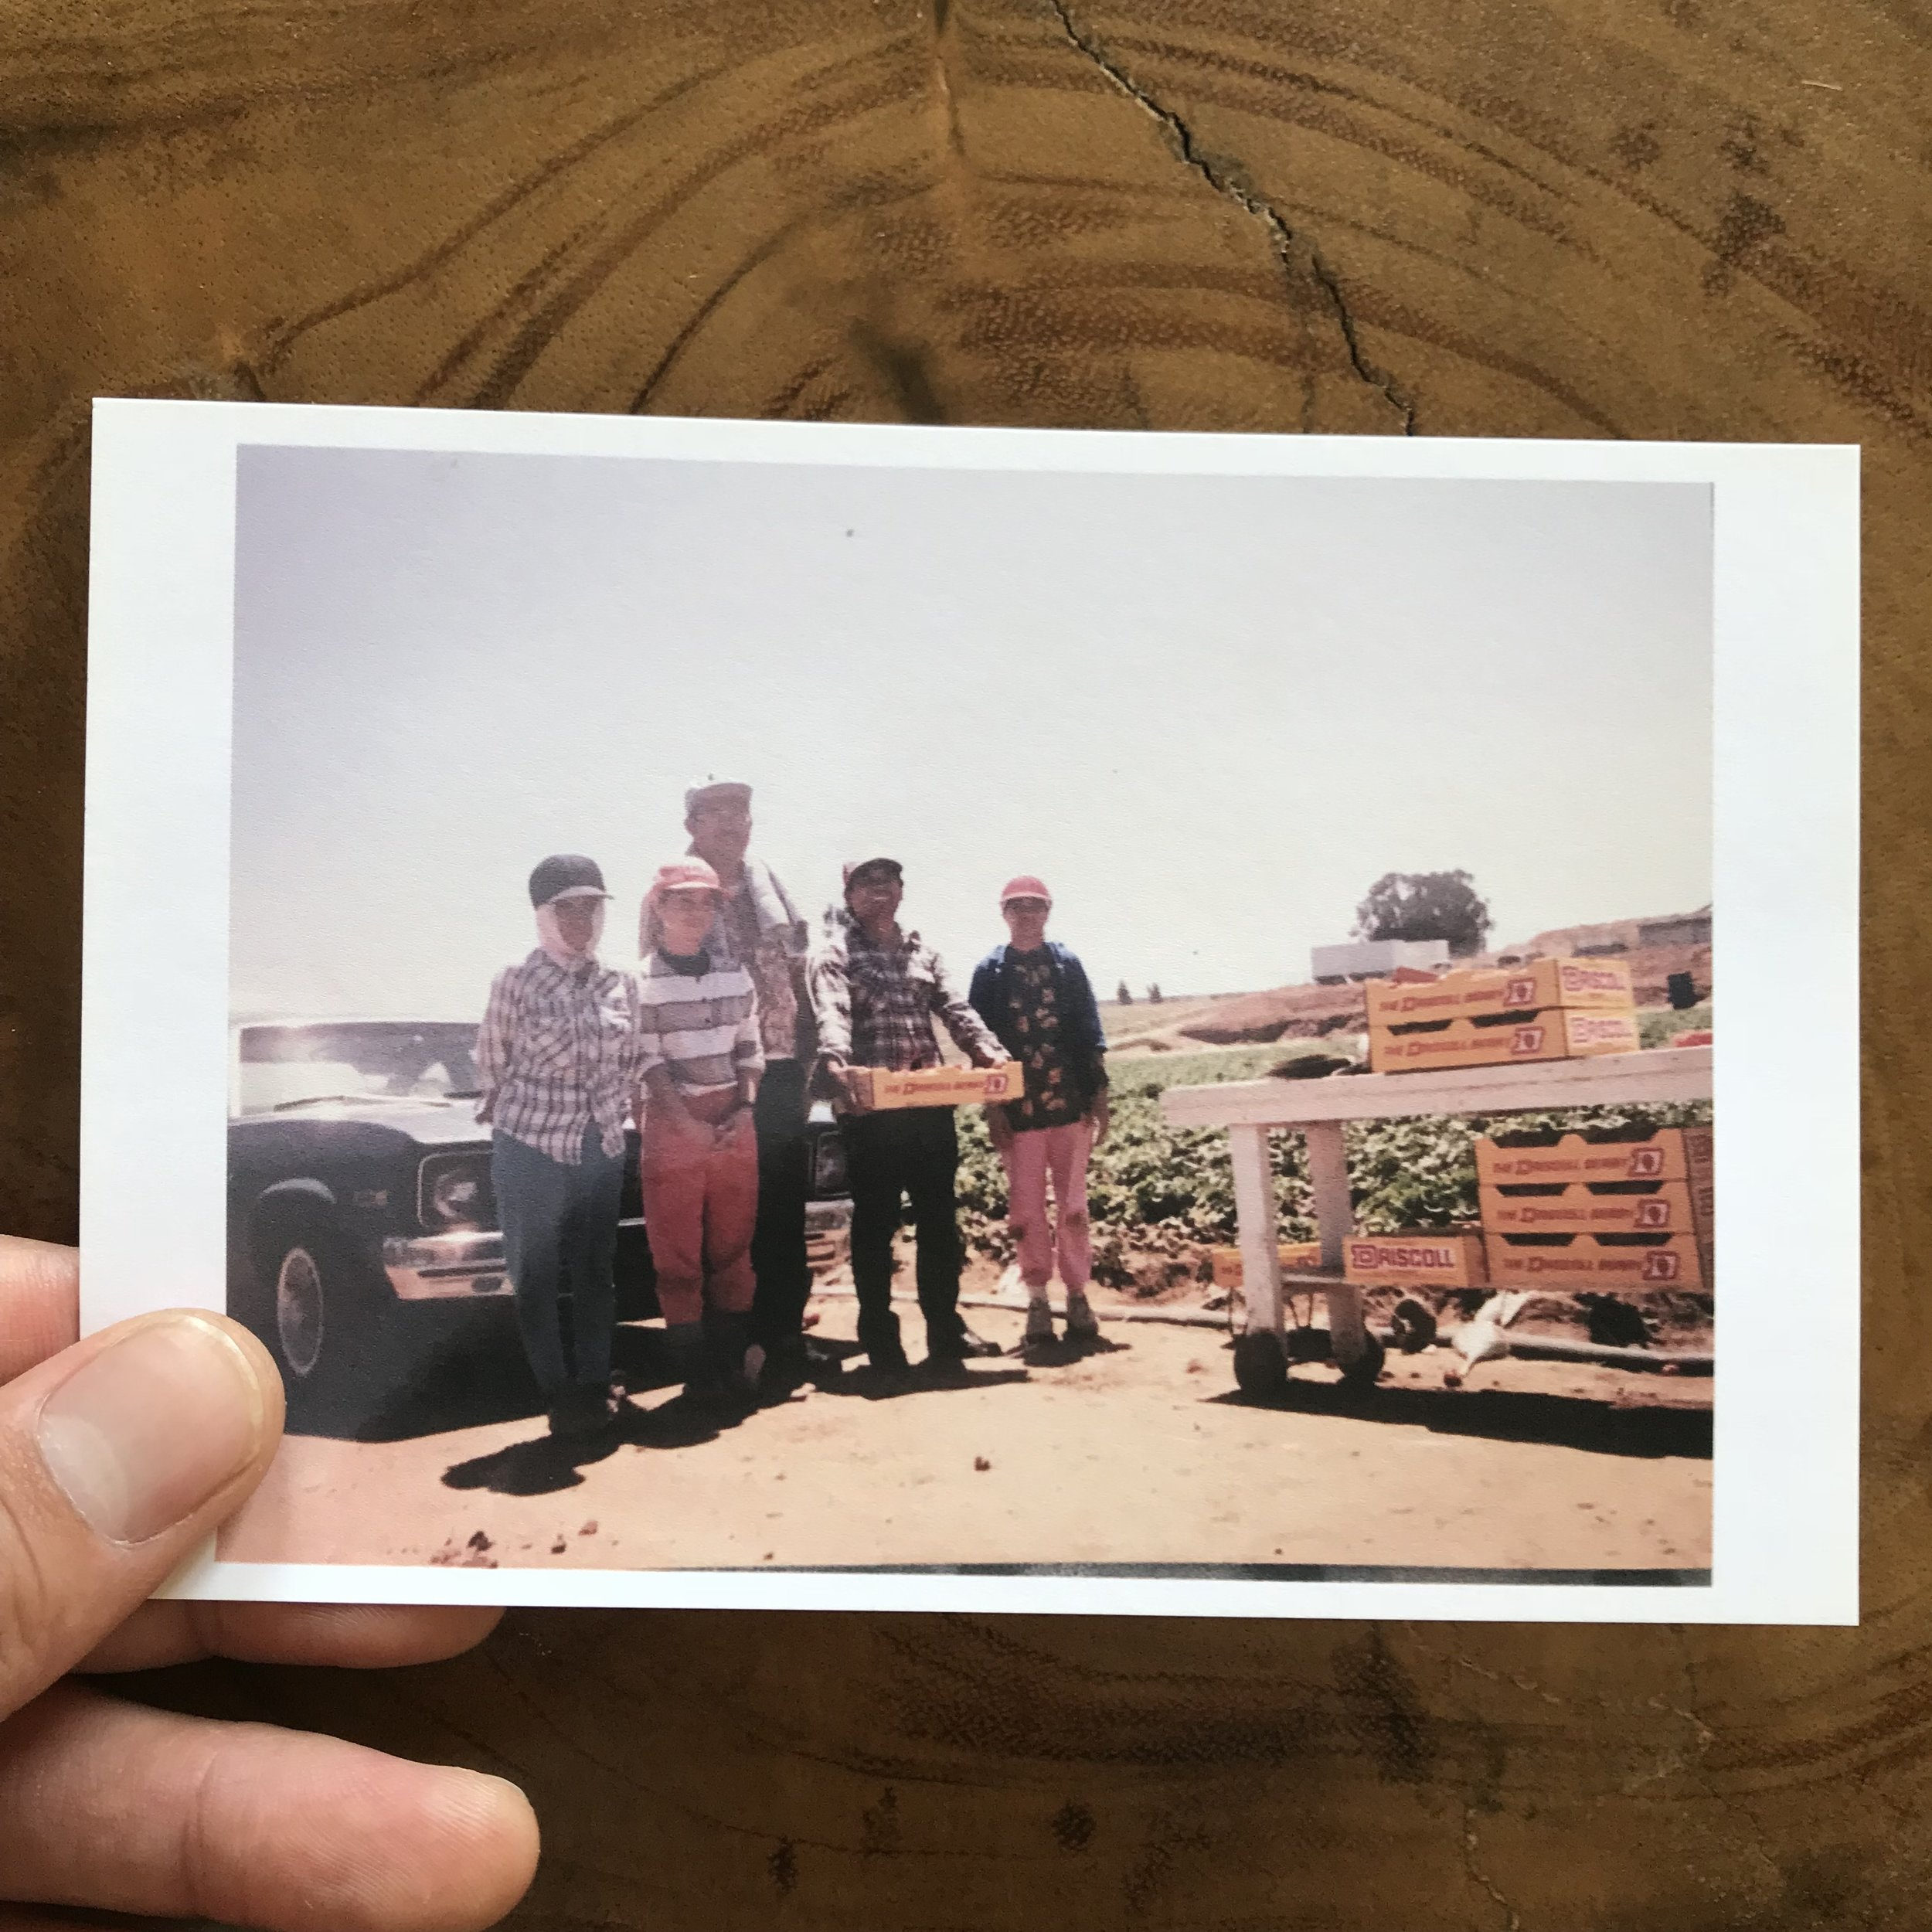 """This is a photo of my mom (pretty in pink) and some of my aunties and uncles working in the fields in the late 70's or early 80s. When my mom first immigrated here, the day after she arrived to America, she was in the fields working. She thought, """"this is America? I thought America was nice.""""  Filipinos worked in the fields for a large part of the 20th Century. Larry Itliong was a labor rights pioneer, convincing Cesar Chavez to picket and boycott the agricultural industry, starting a revolution.  My family worked for Driscoll Farms... BOYCOTT DRISCOLL FARMS! They underpay their workers — as little as $7/day, expose them to harmful chemicals, support child labor, and provide unlivable housing for their workers."""